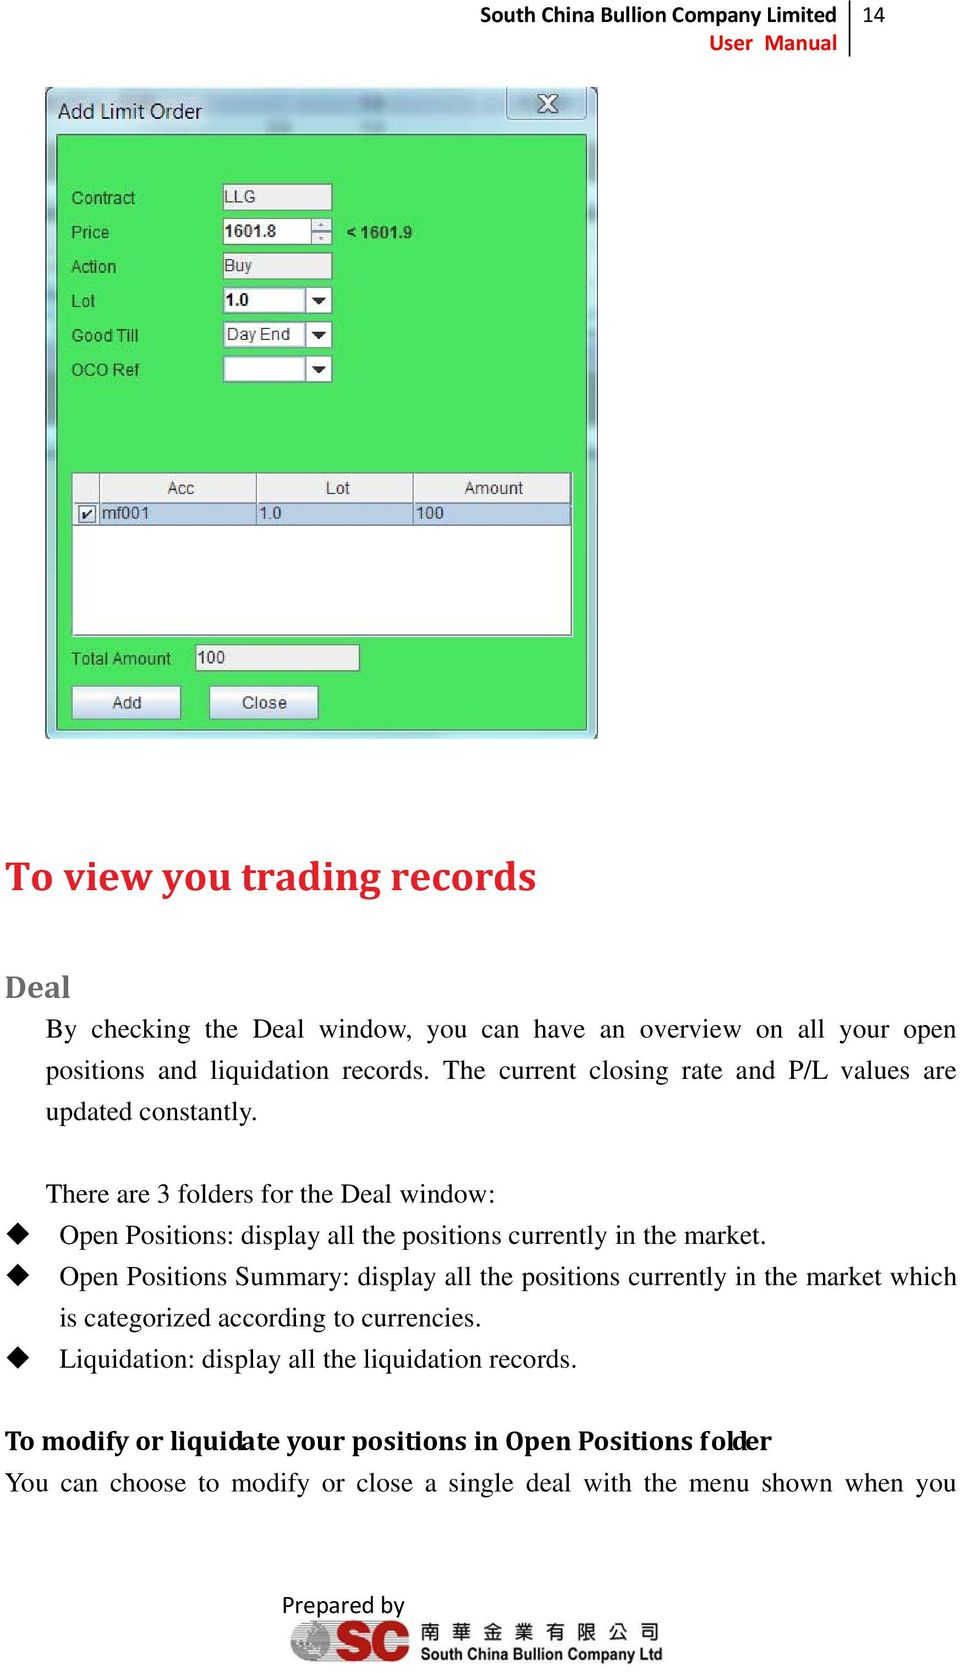 There are 3 folders for the Deal window: Open Positions: display all the positions currently in the market.